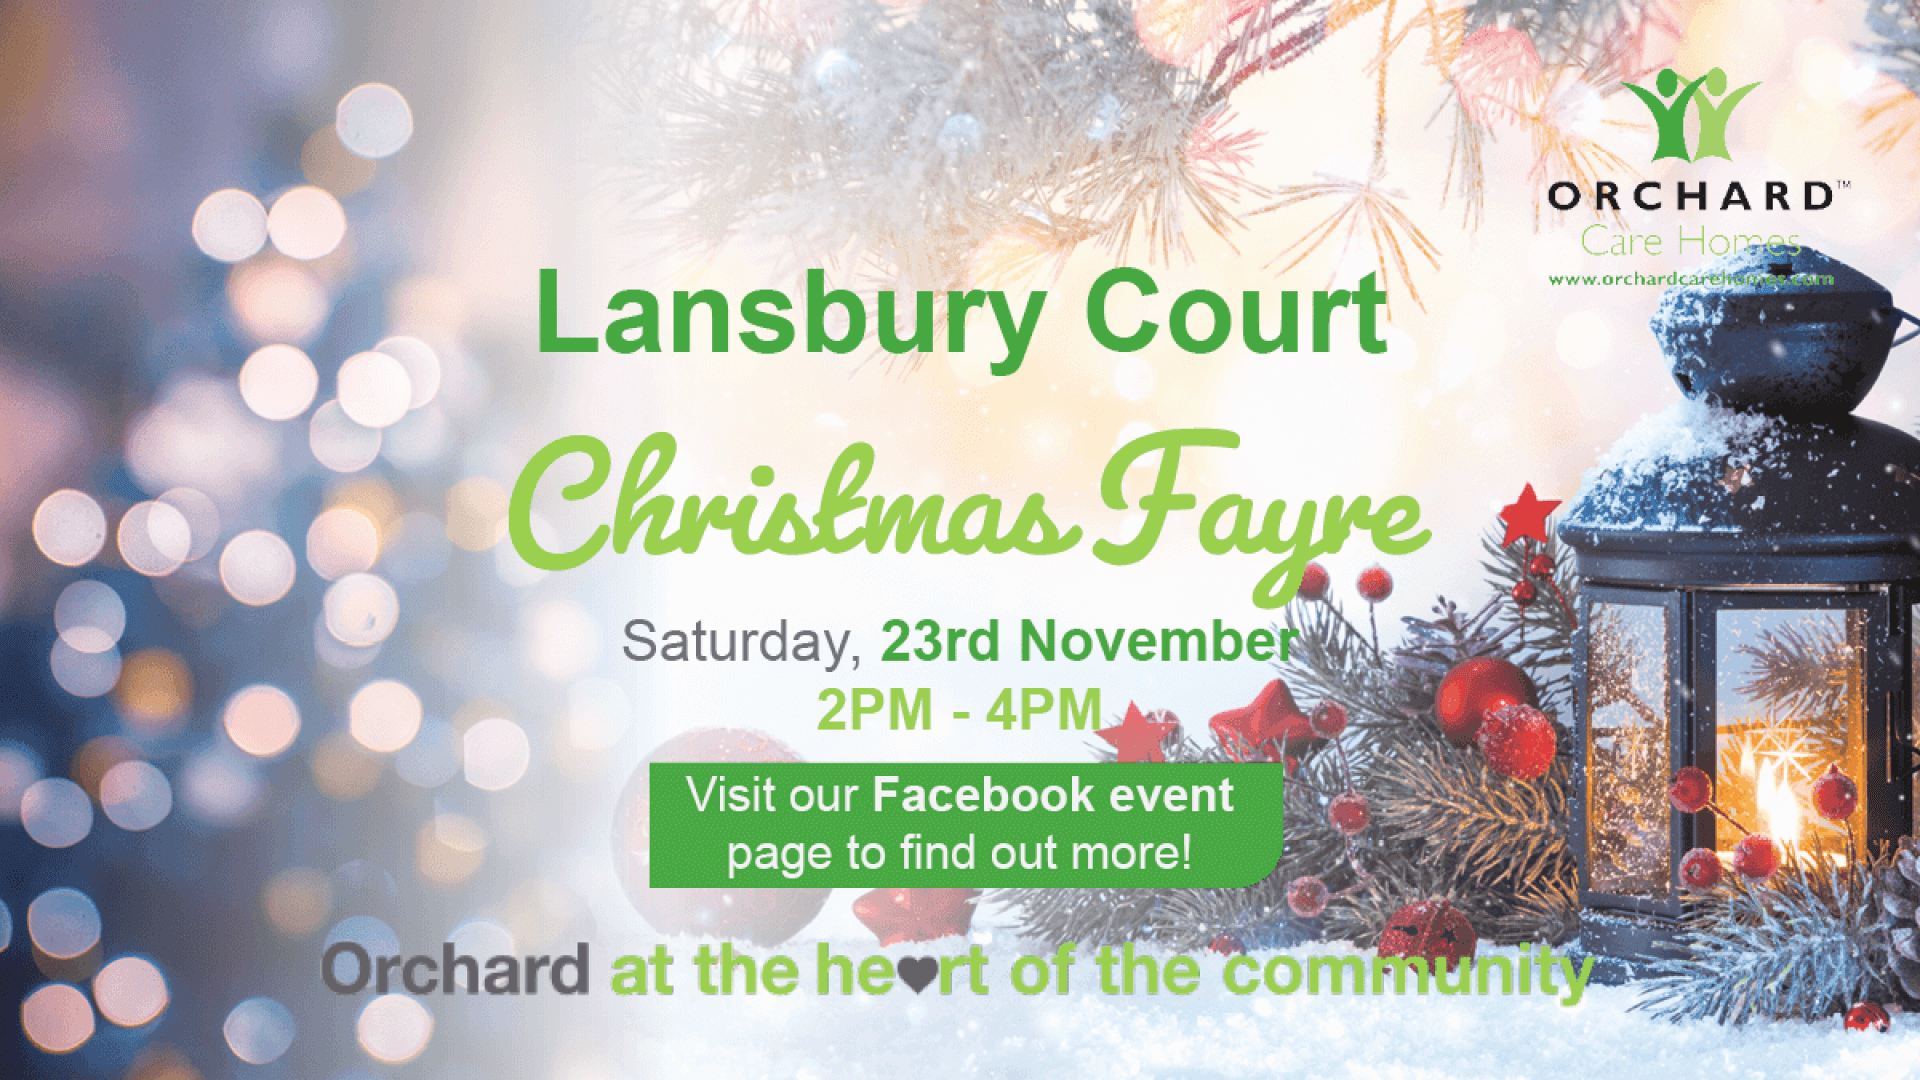 Lansbury Court - Sunderland Care Home - Christmas Fayre.